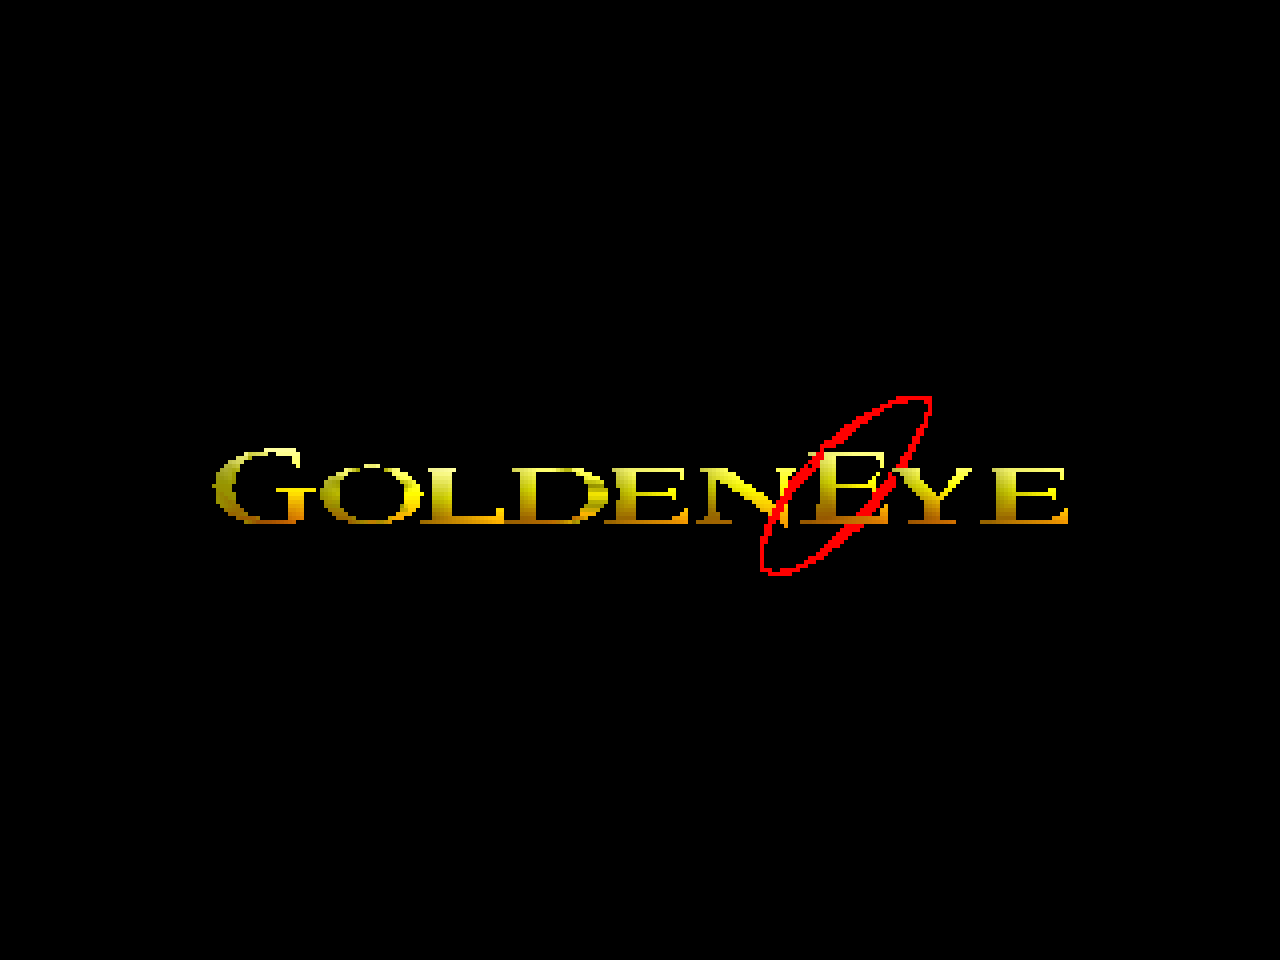 https://s3.eu-west-3.amazonaws.com/games.anthony-dessalles.com/GoldenEye 007 N64 2020 - Screenshots/GoldenEye 007-201118-172932.png